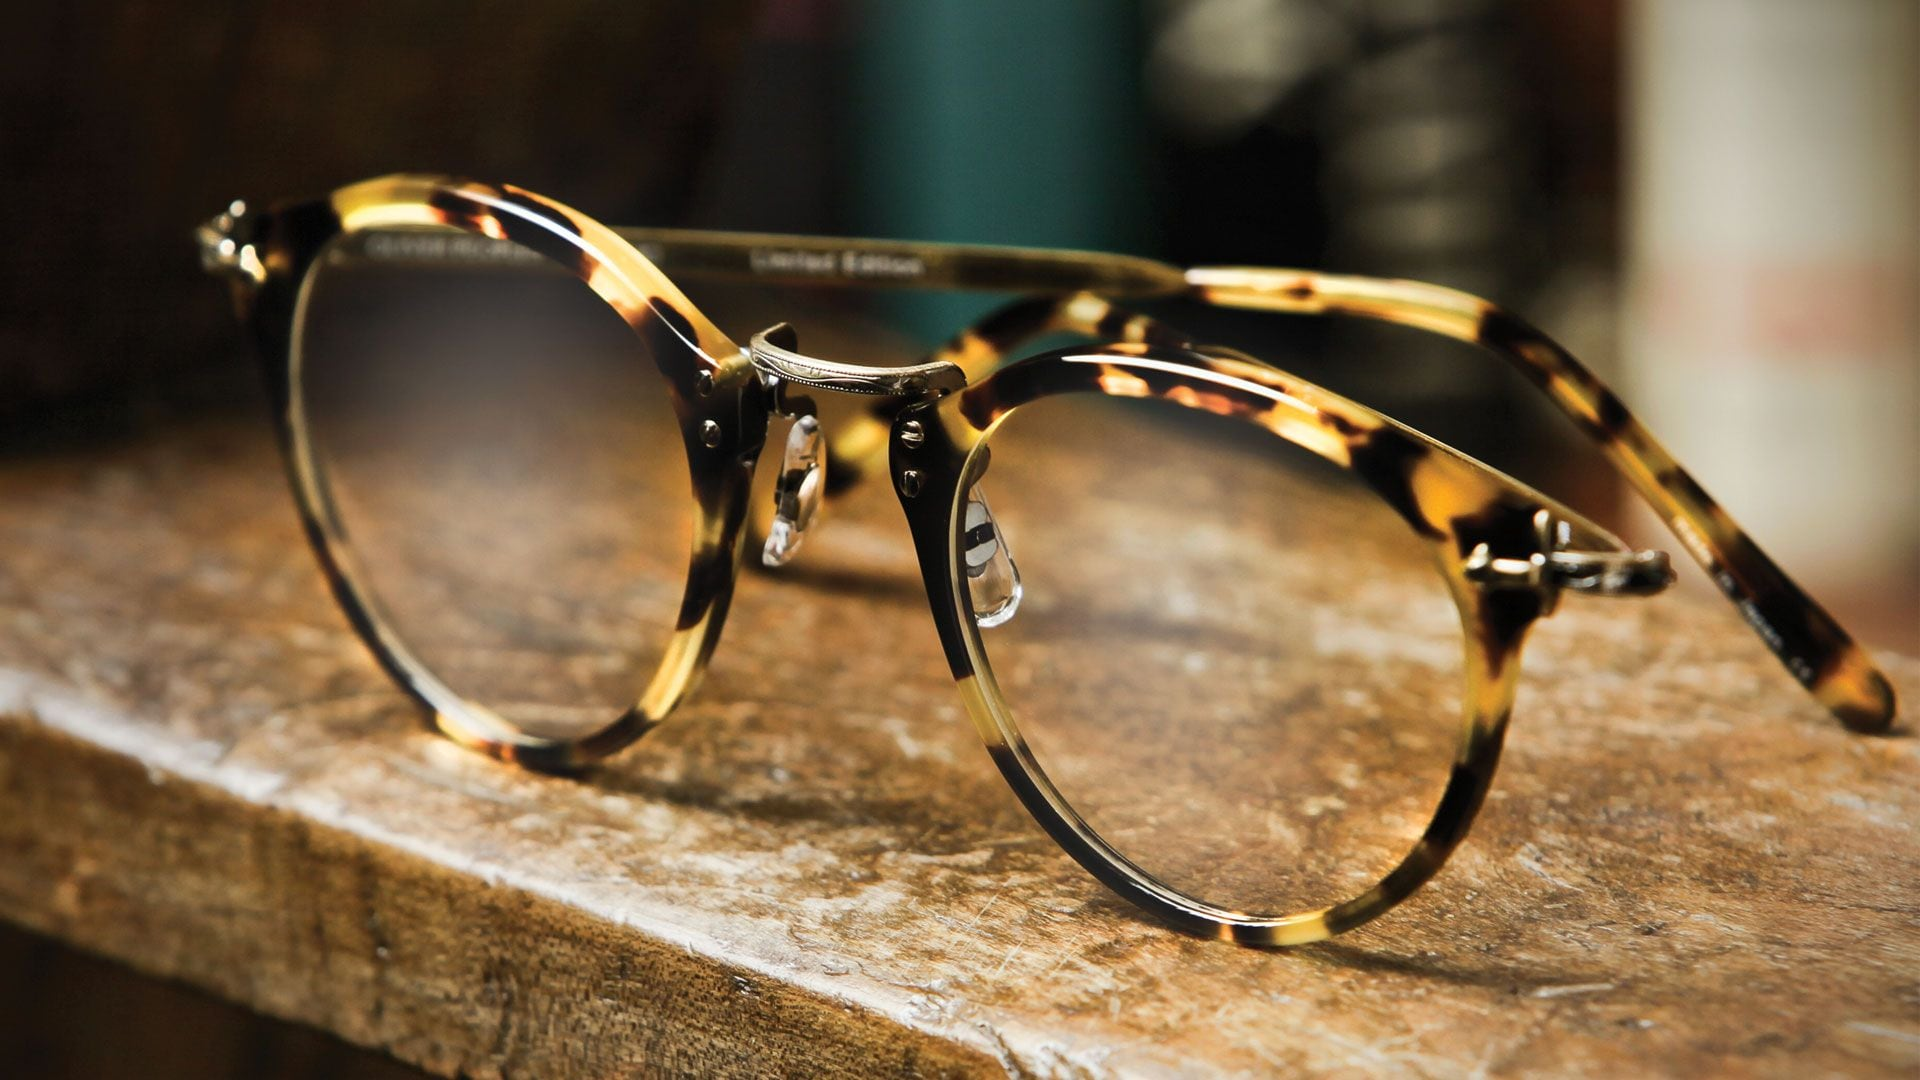 Oliver Peoples | A Heritage Brand